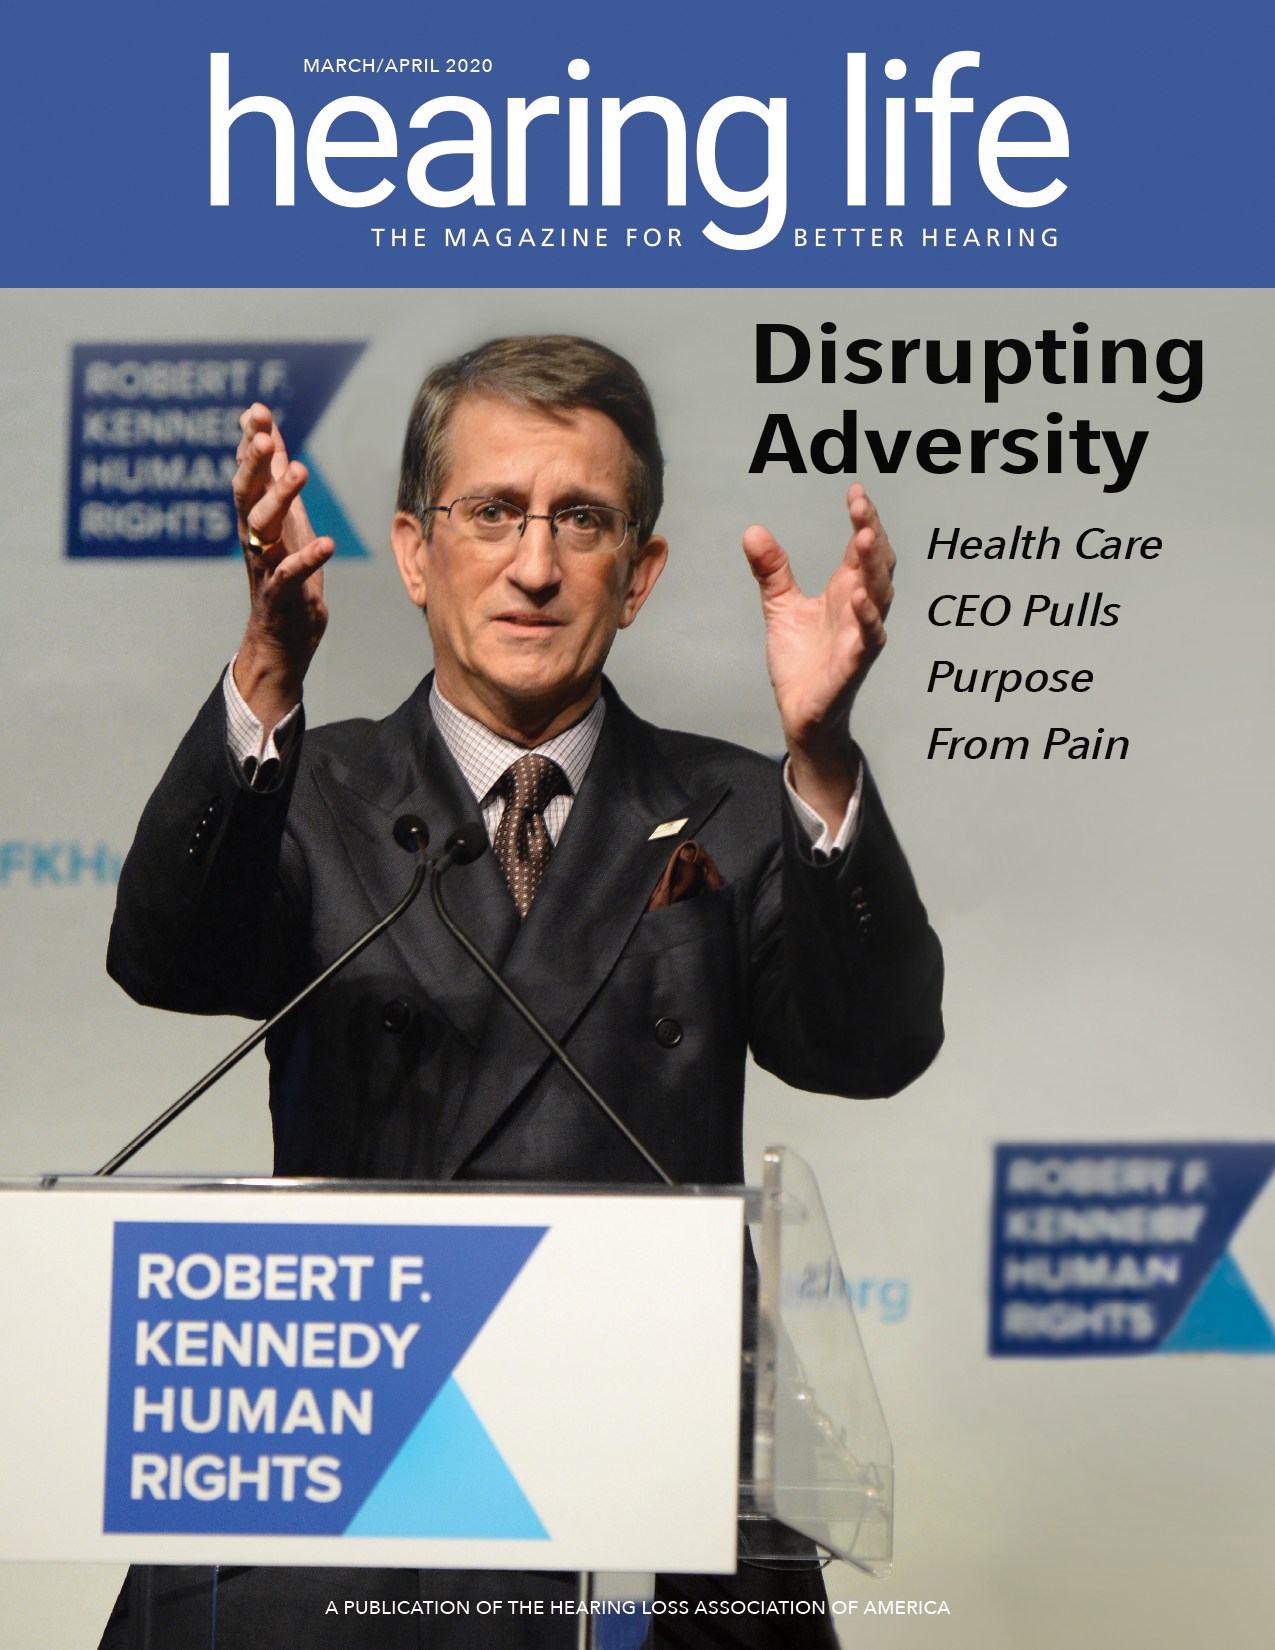 Donato Tramuto, CEO of Tivity Health, Inc. on the cover of Hearing Life - Disrupting Adversity Health Care CEO Pulls Puspose from Pain